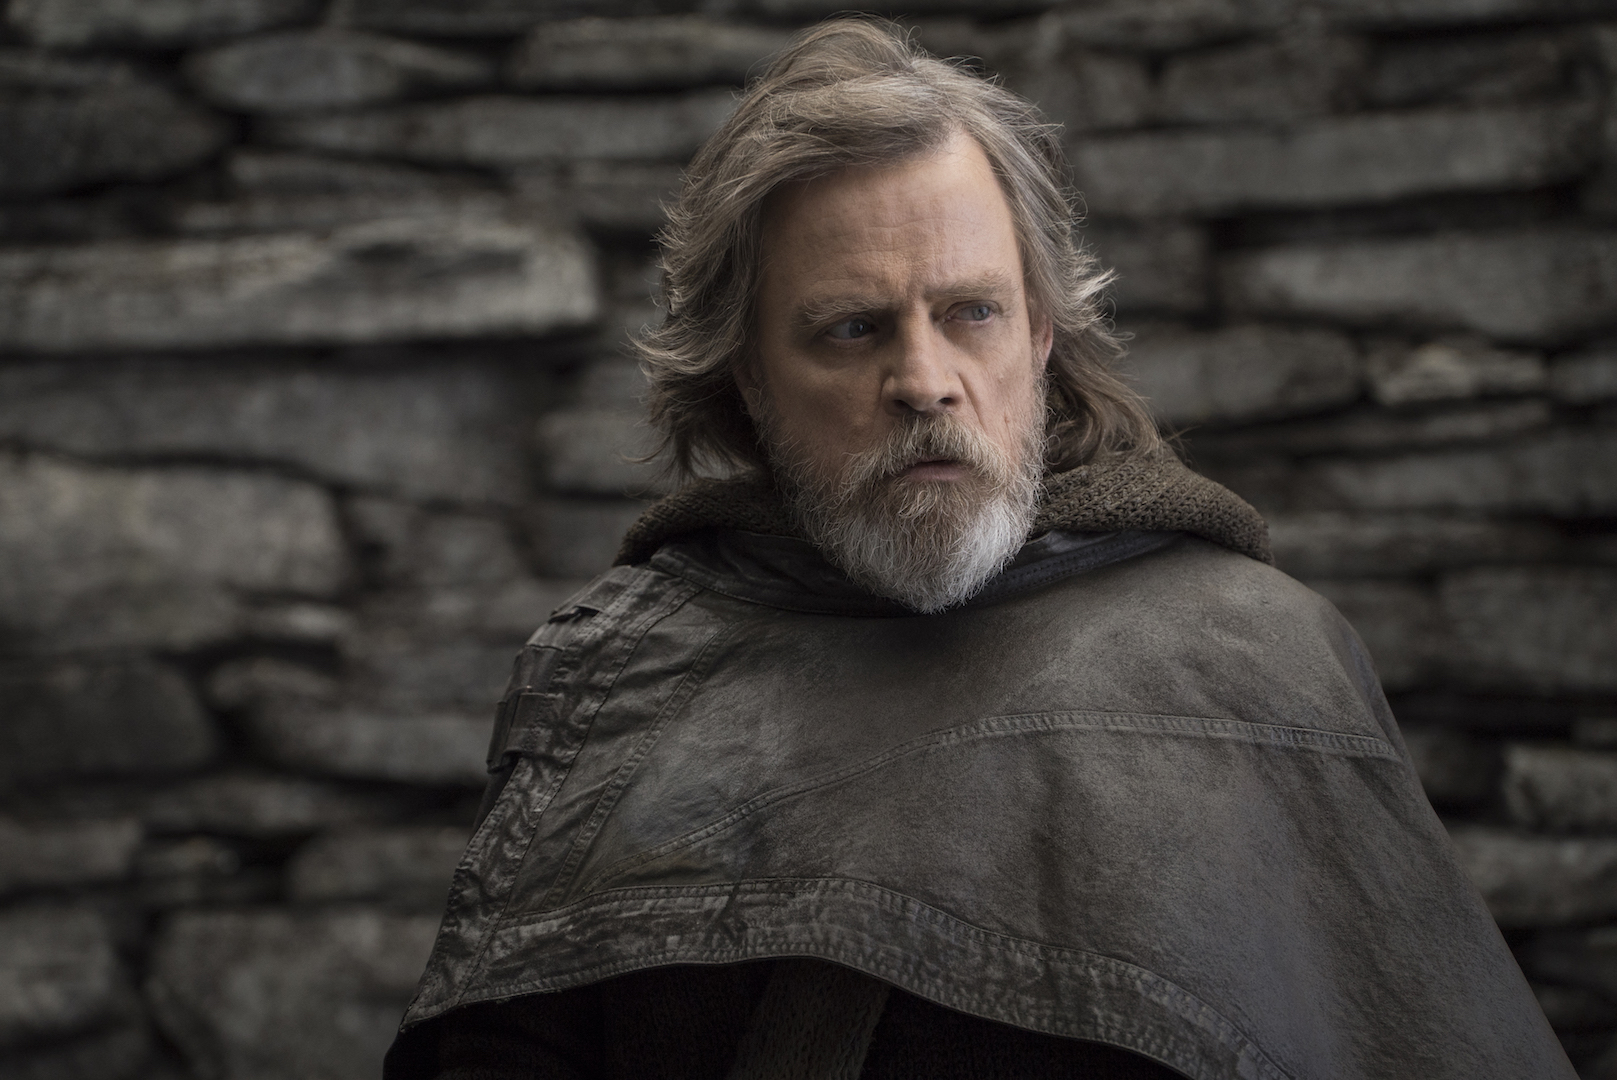 Old Luke (Mark Hamill) is good Luke.